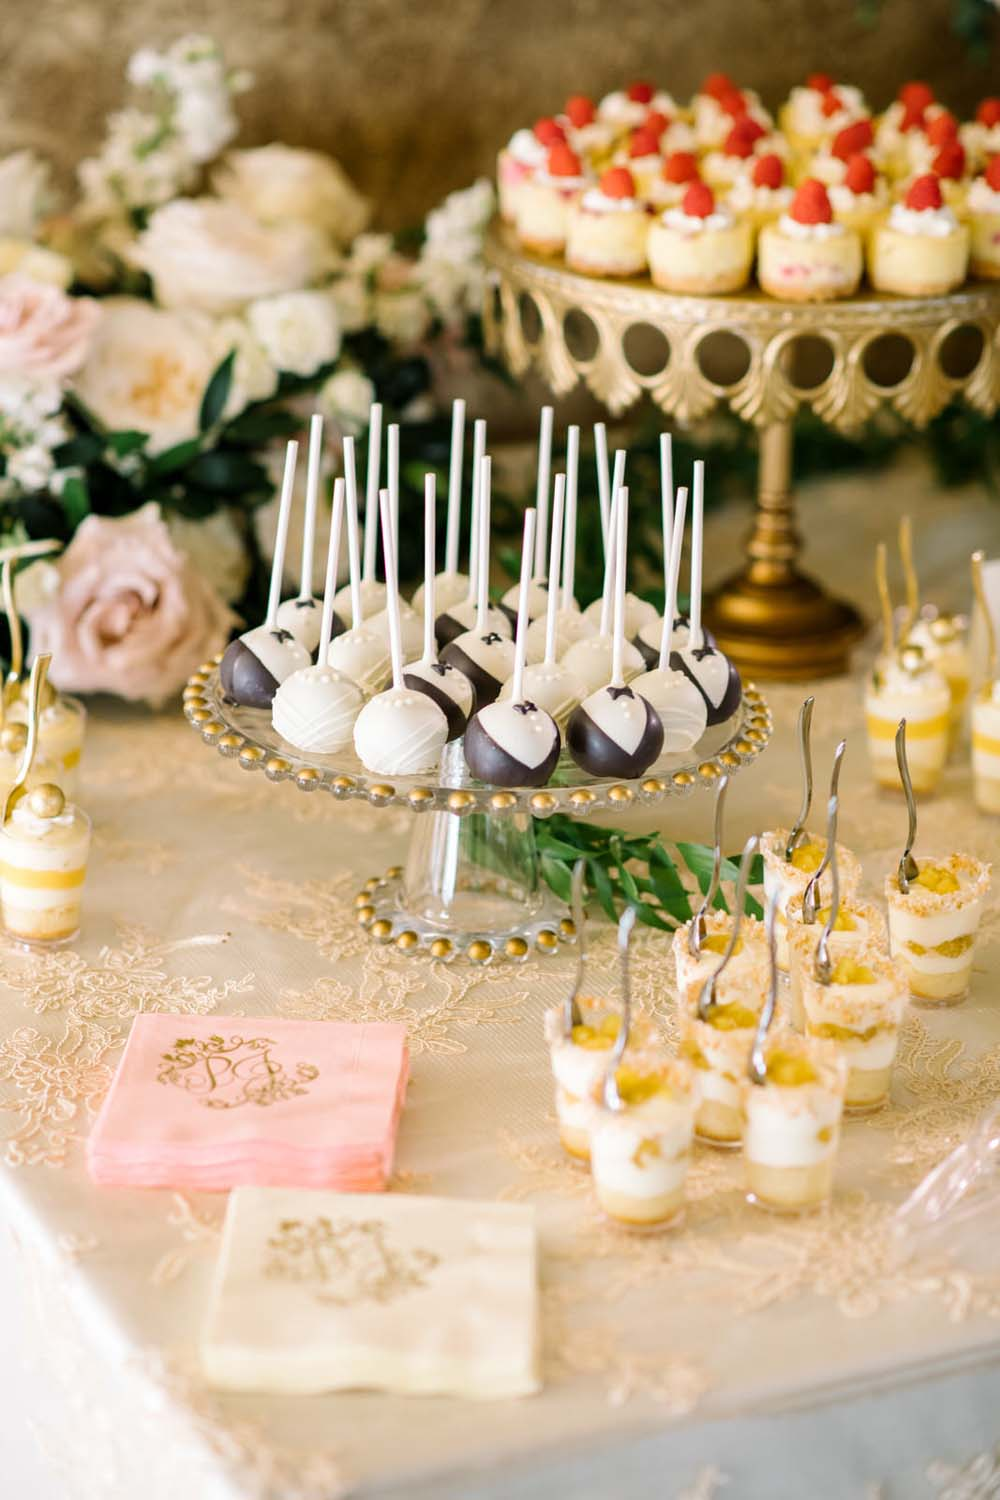 A Regal Fairytale Wedding in Banff, Alberta - Dessert